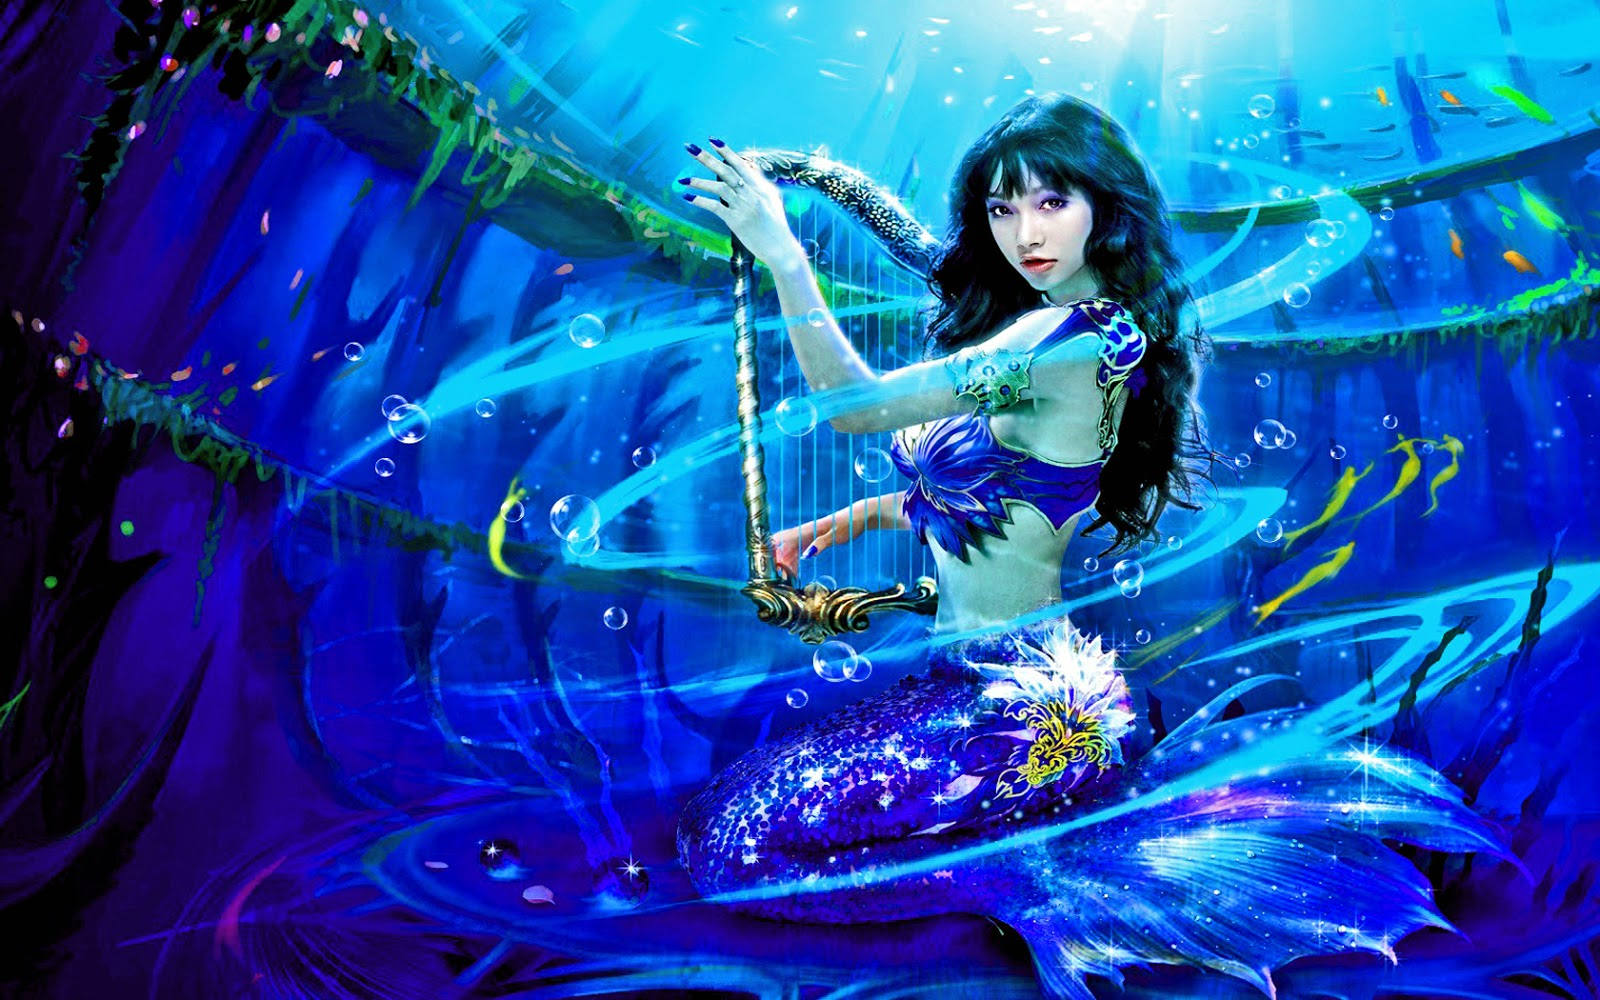 Fantasy-photoshoot-Asian-girl-as-mermaid-abstract-theme-picture-HD.jpg